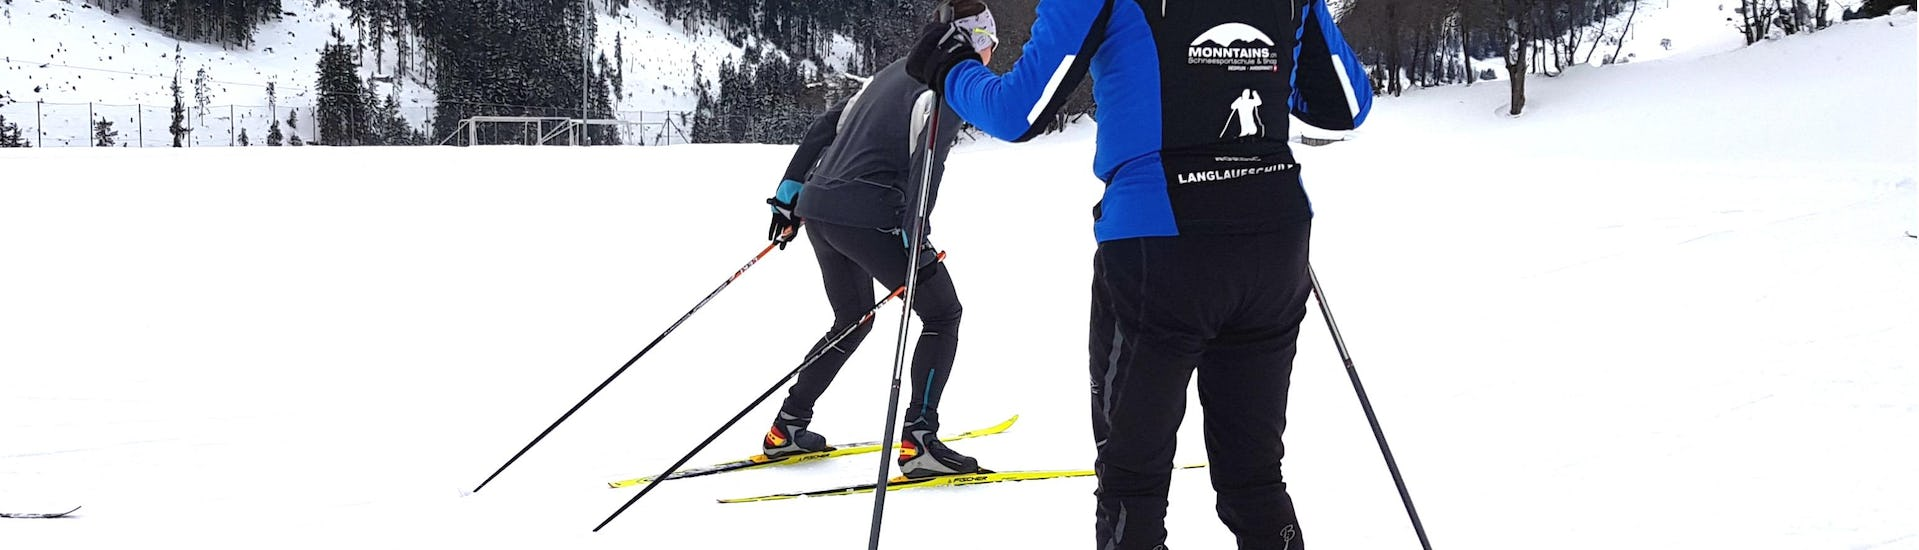 An instructor is watching the participants' progress and giving tips during the Trial Cross Country Skiing Lessons - Beginners with Skischule Monntains.